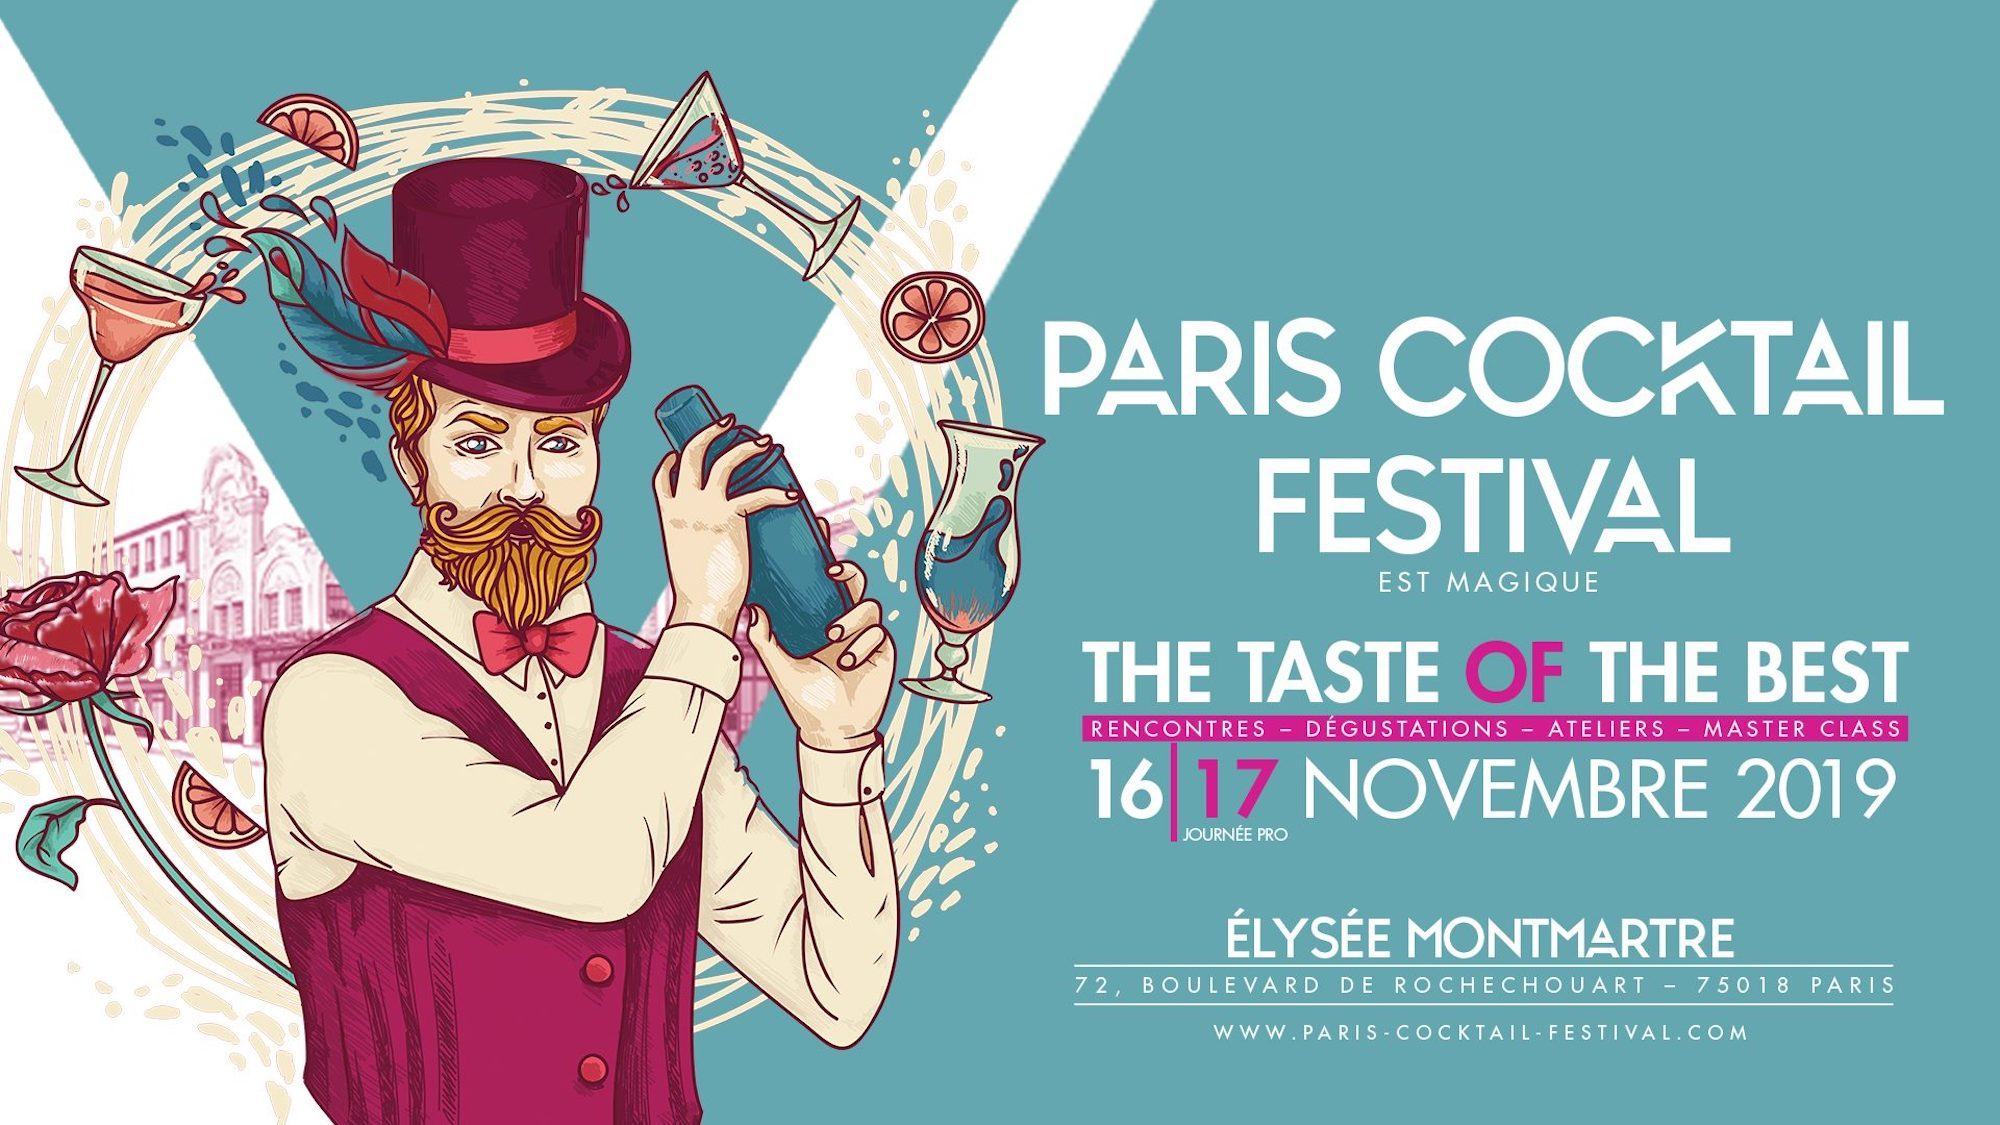 The poster for Paris Cocktail Festival which takes place each November at the Elysée Montmartre.